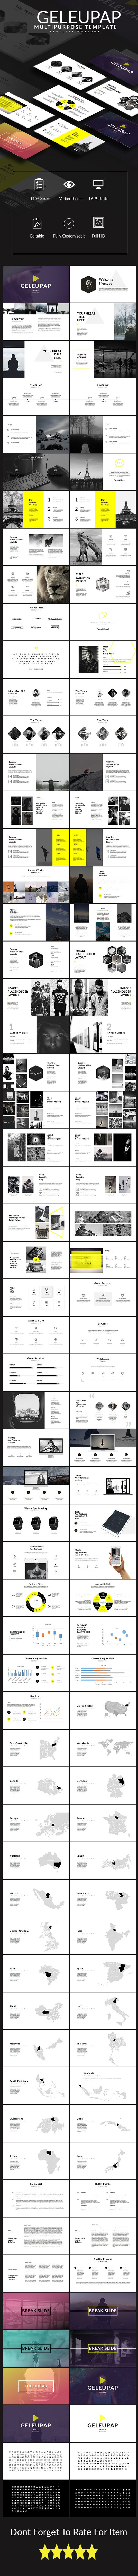 Geleupap Multipurpose Keynote Template — Keynote KEY #enterprise #marketing • Download ➝ https://graphicriver.net/item/geleupap-multipurpose-keynote-template/18790386?ref=pxcr